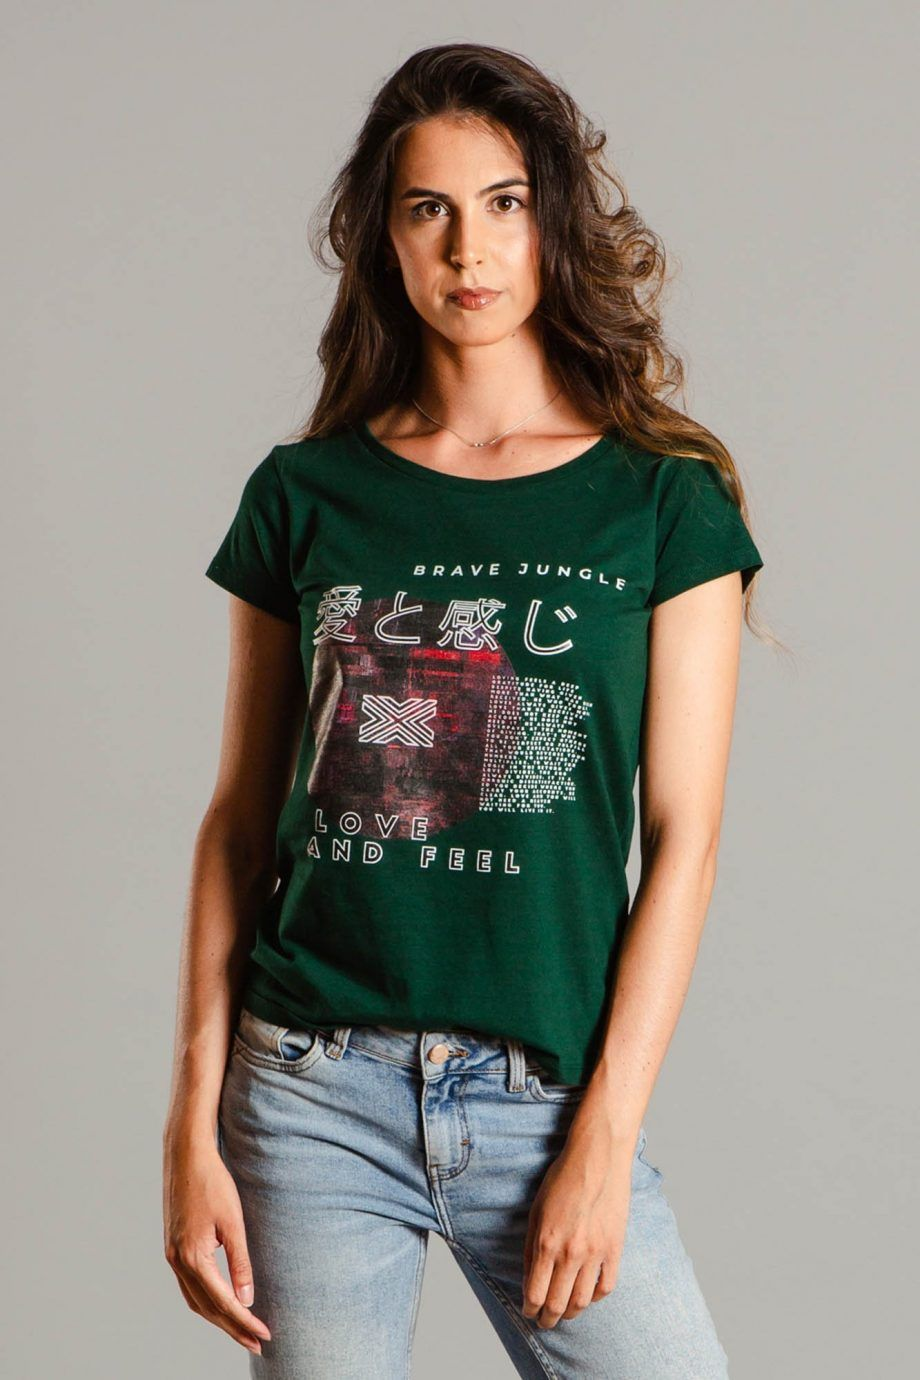 Brave Jungle Womens T-shirt - CMBO1001